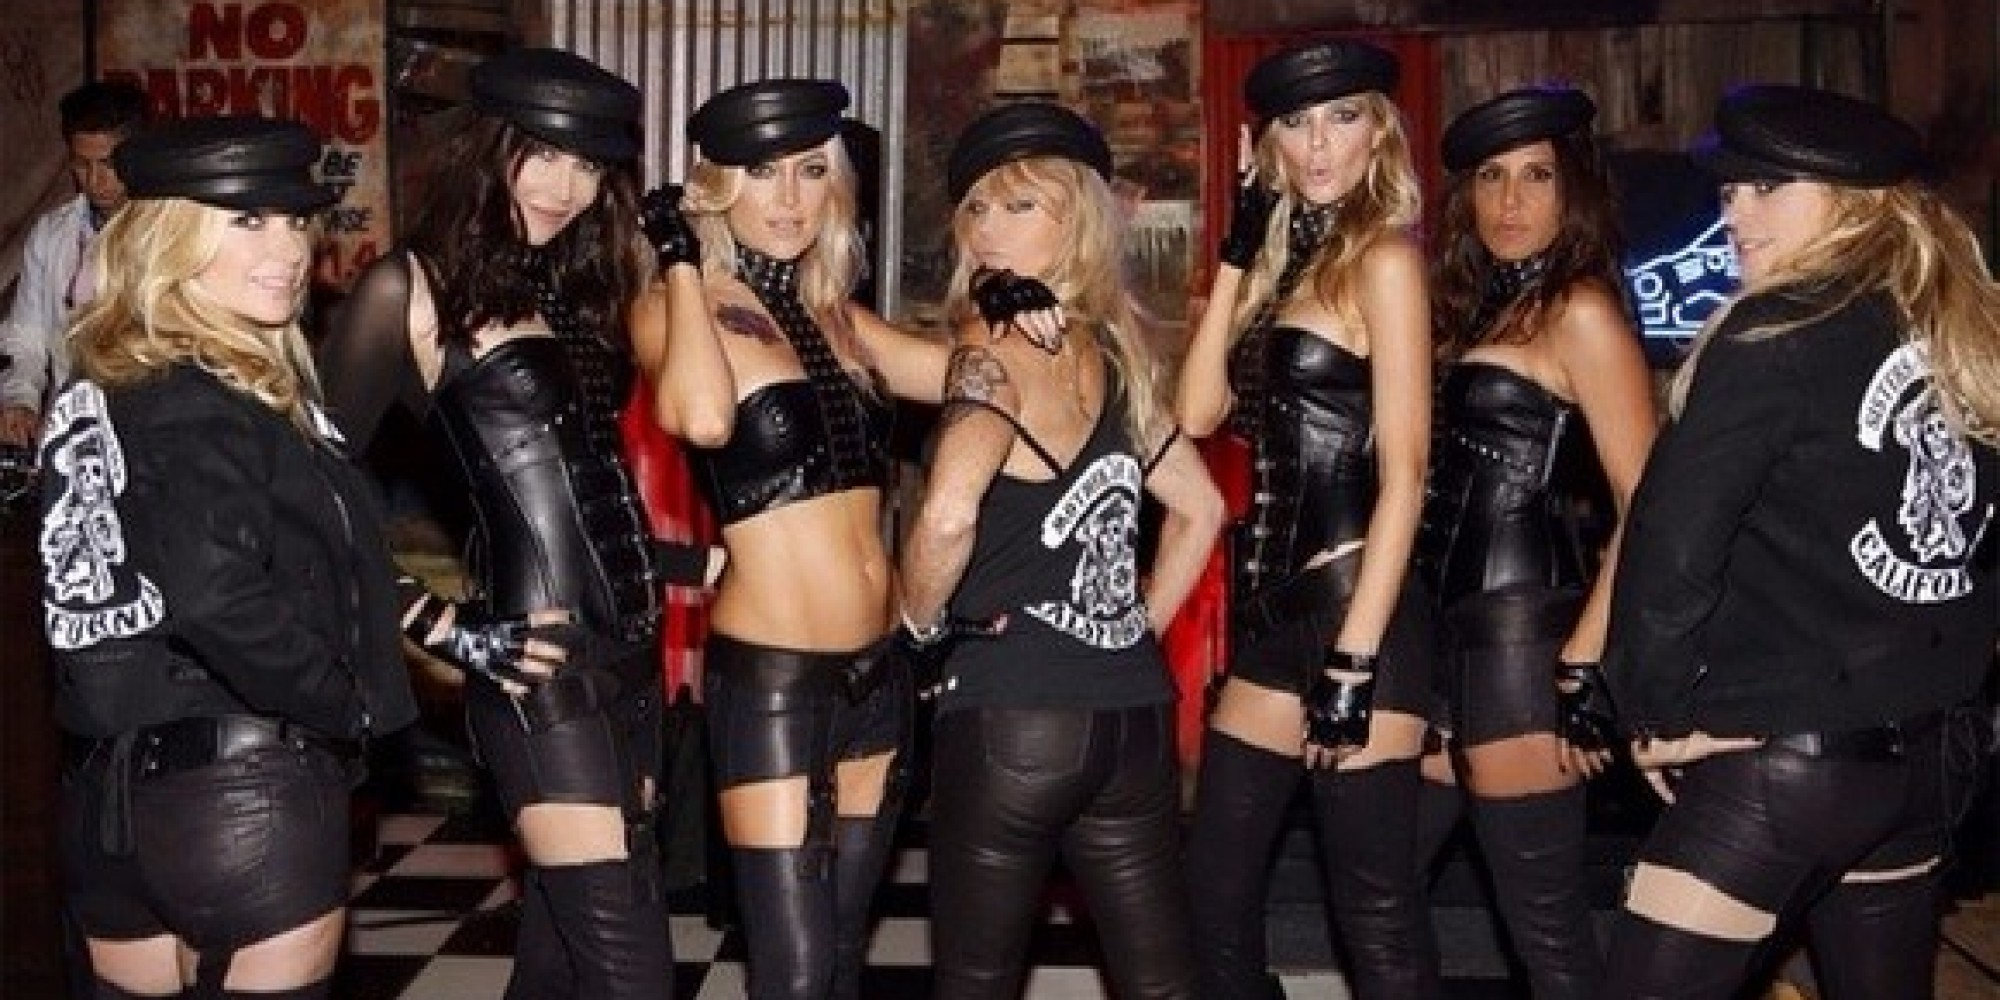 kate hudson rocks leather mother of anarchy costume for halloween party huffpost - Halloween On The Hudson